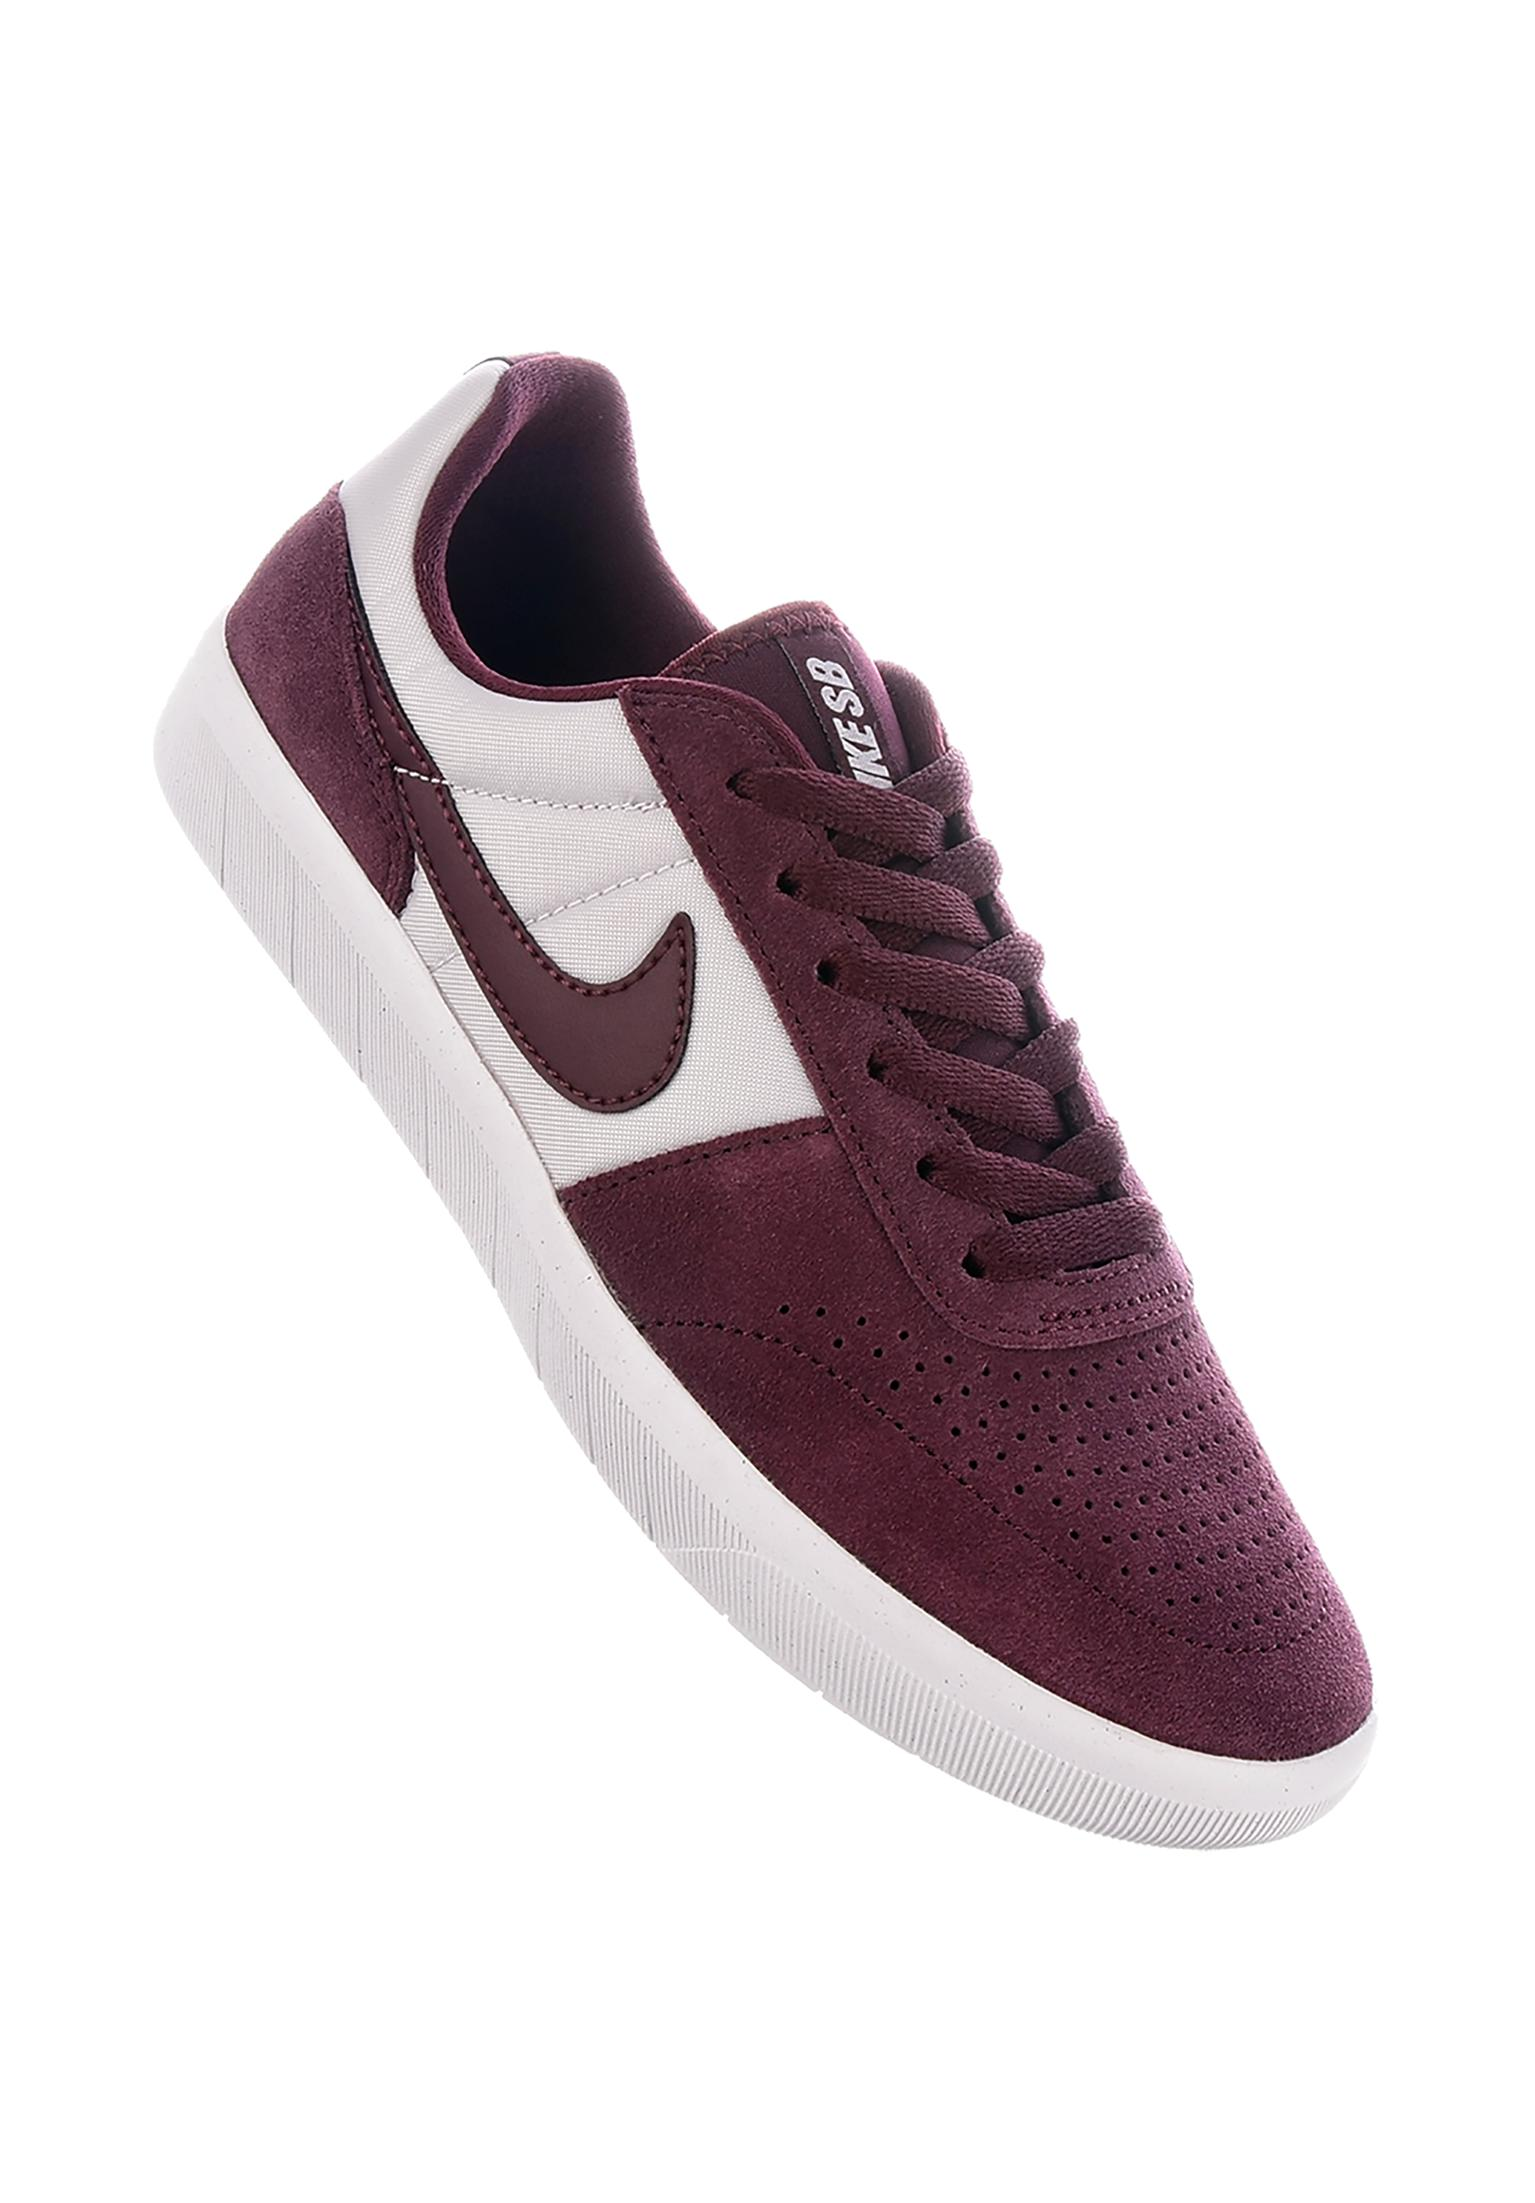 cheap for discount 0fc01 56677 Team Classic Nike SB All Shoes in burgundycrush-burgundycrush-white for  Women  Titus